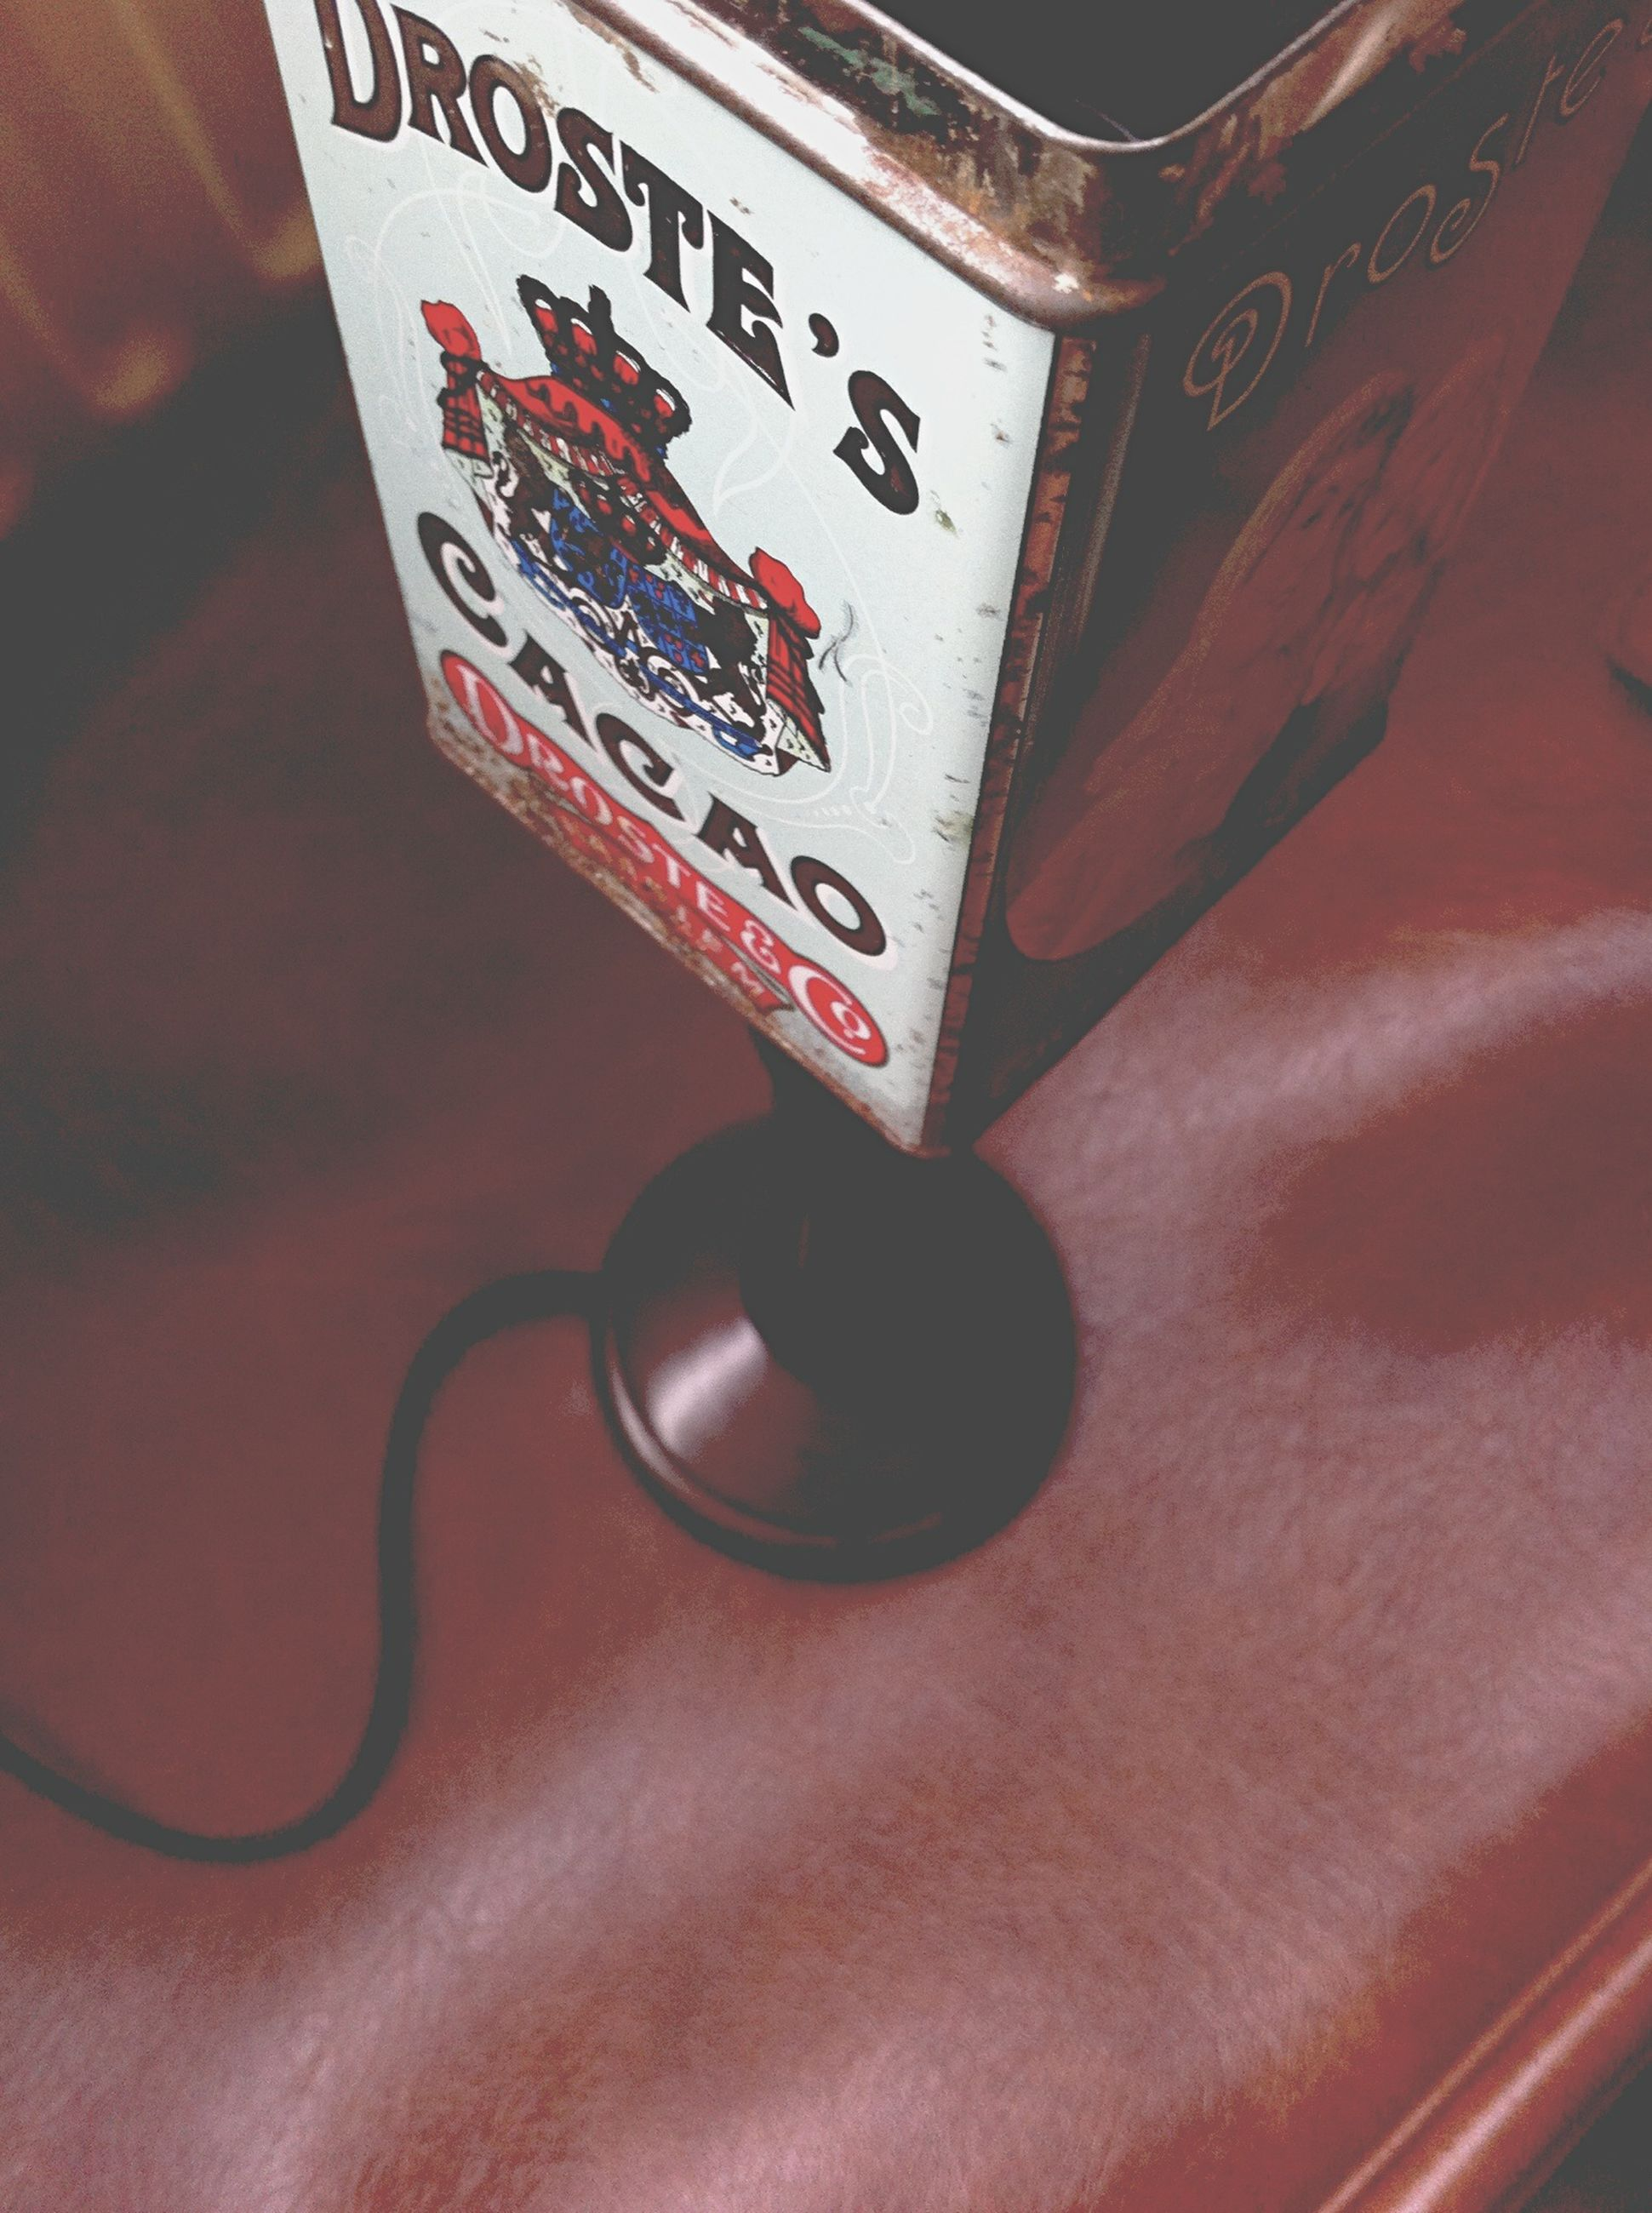 indoors, text, communication, western script, red, close-up, high angle view, technology, still life, number, no people, non-western script, information, table, capital letter, metal, wall - building feature, single object, music, connection